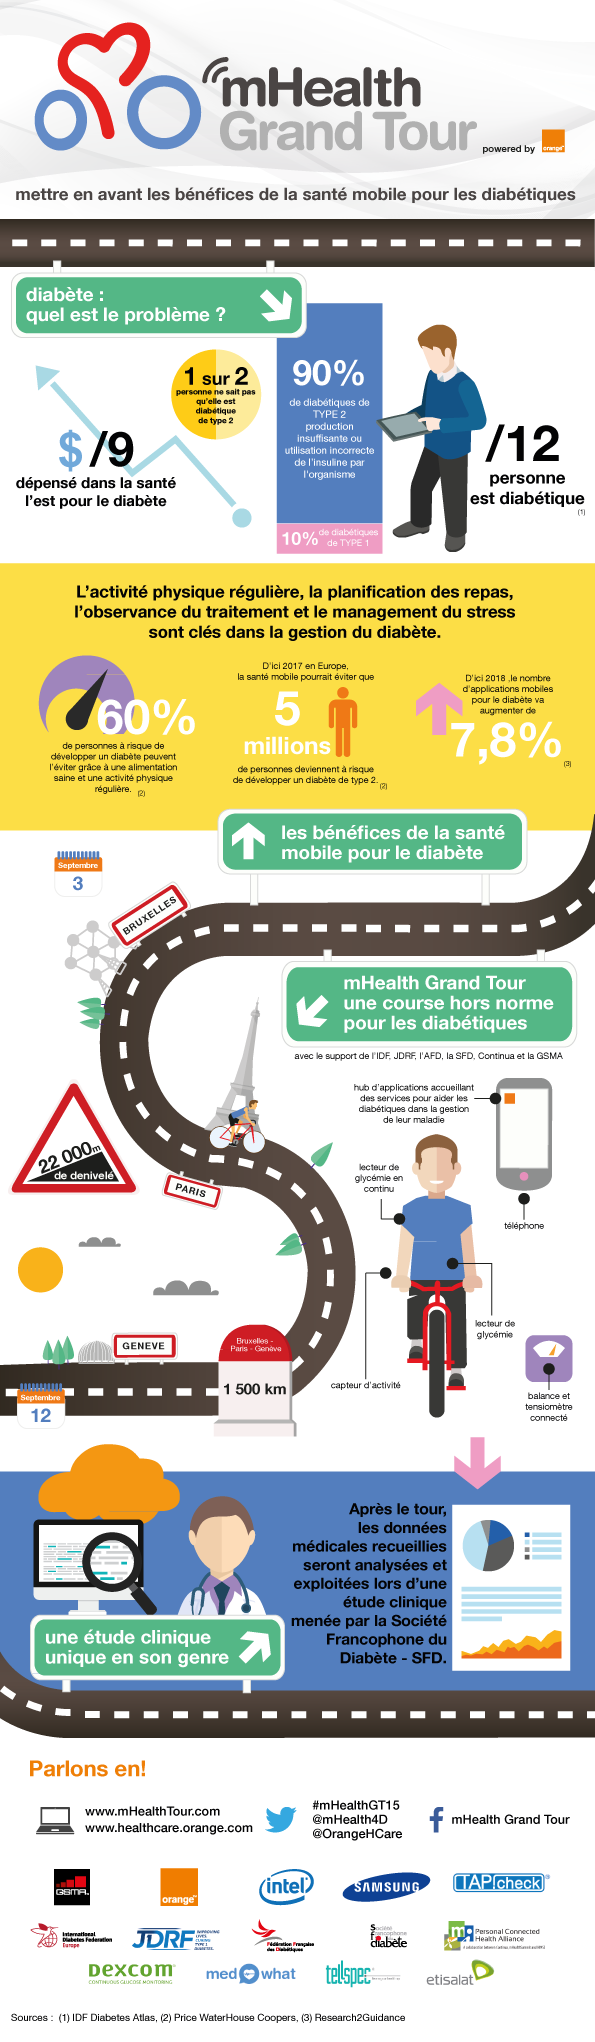 1505-infographie-Le-mHealth-Grand-Tour-2015